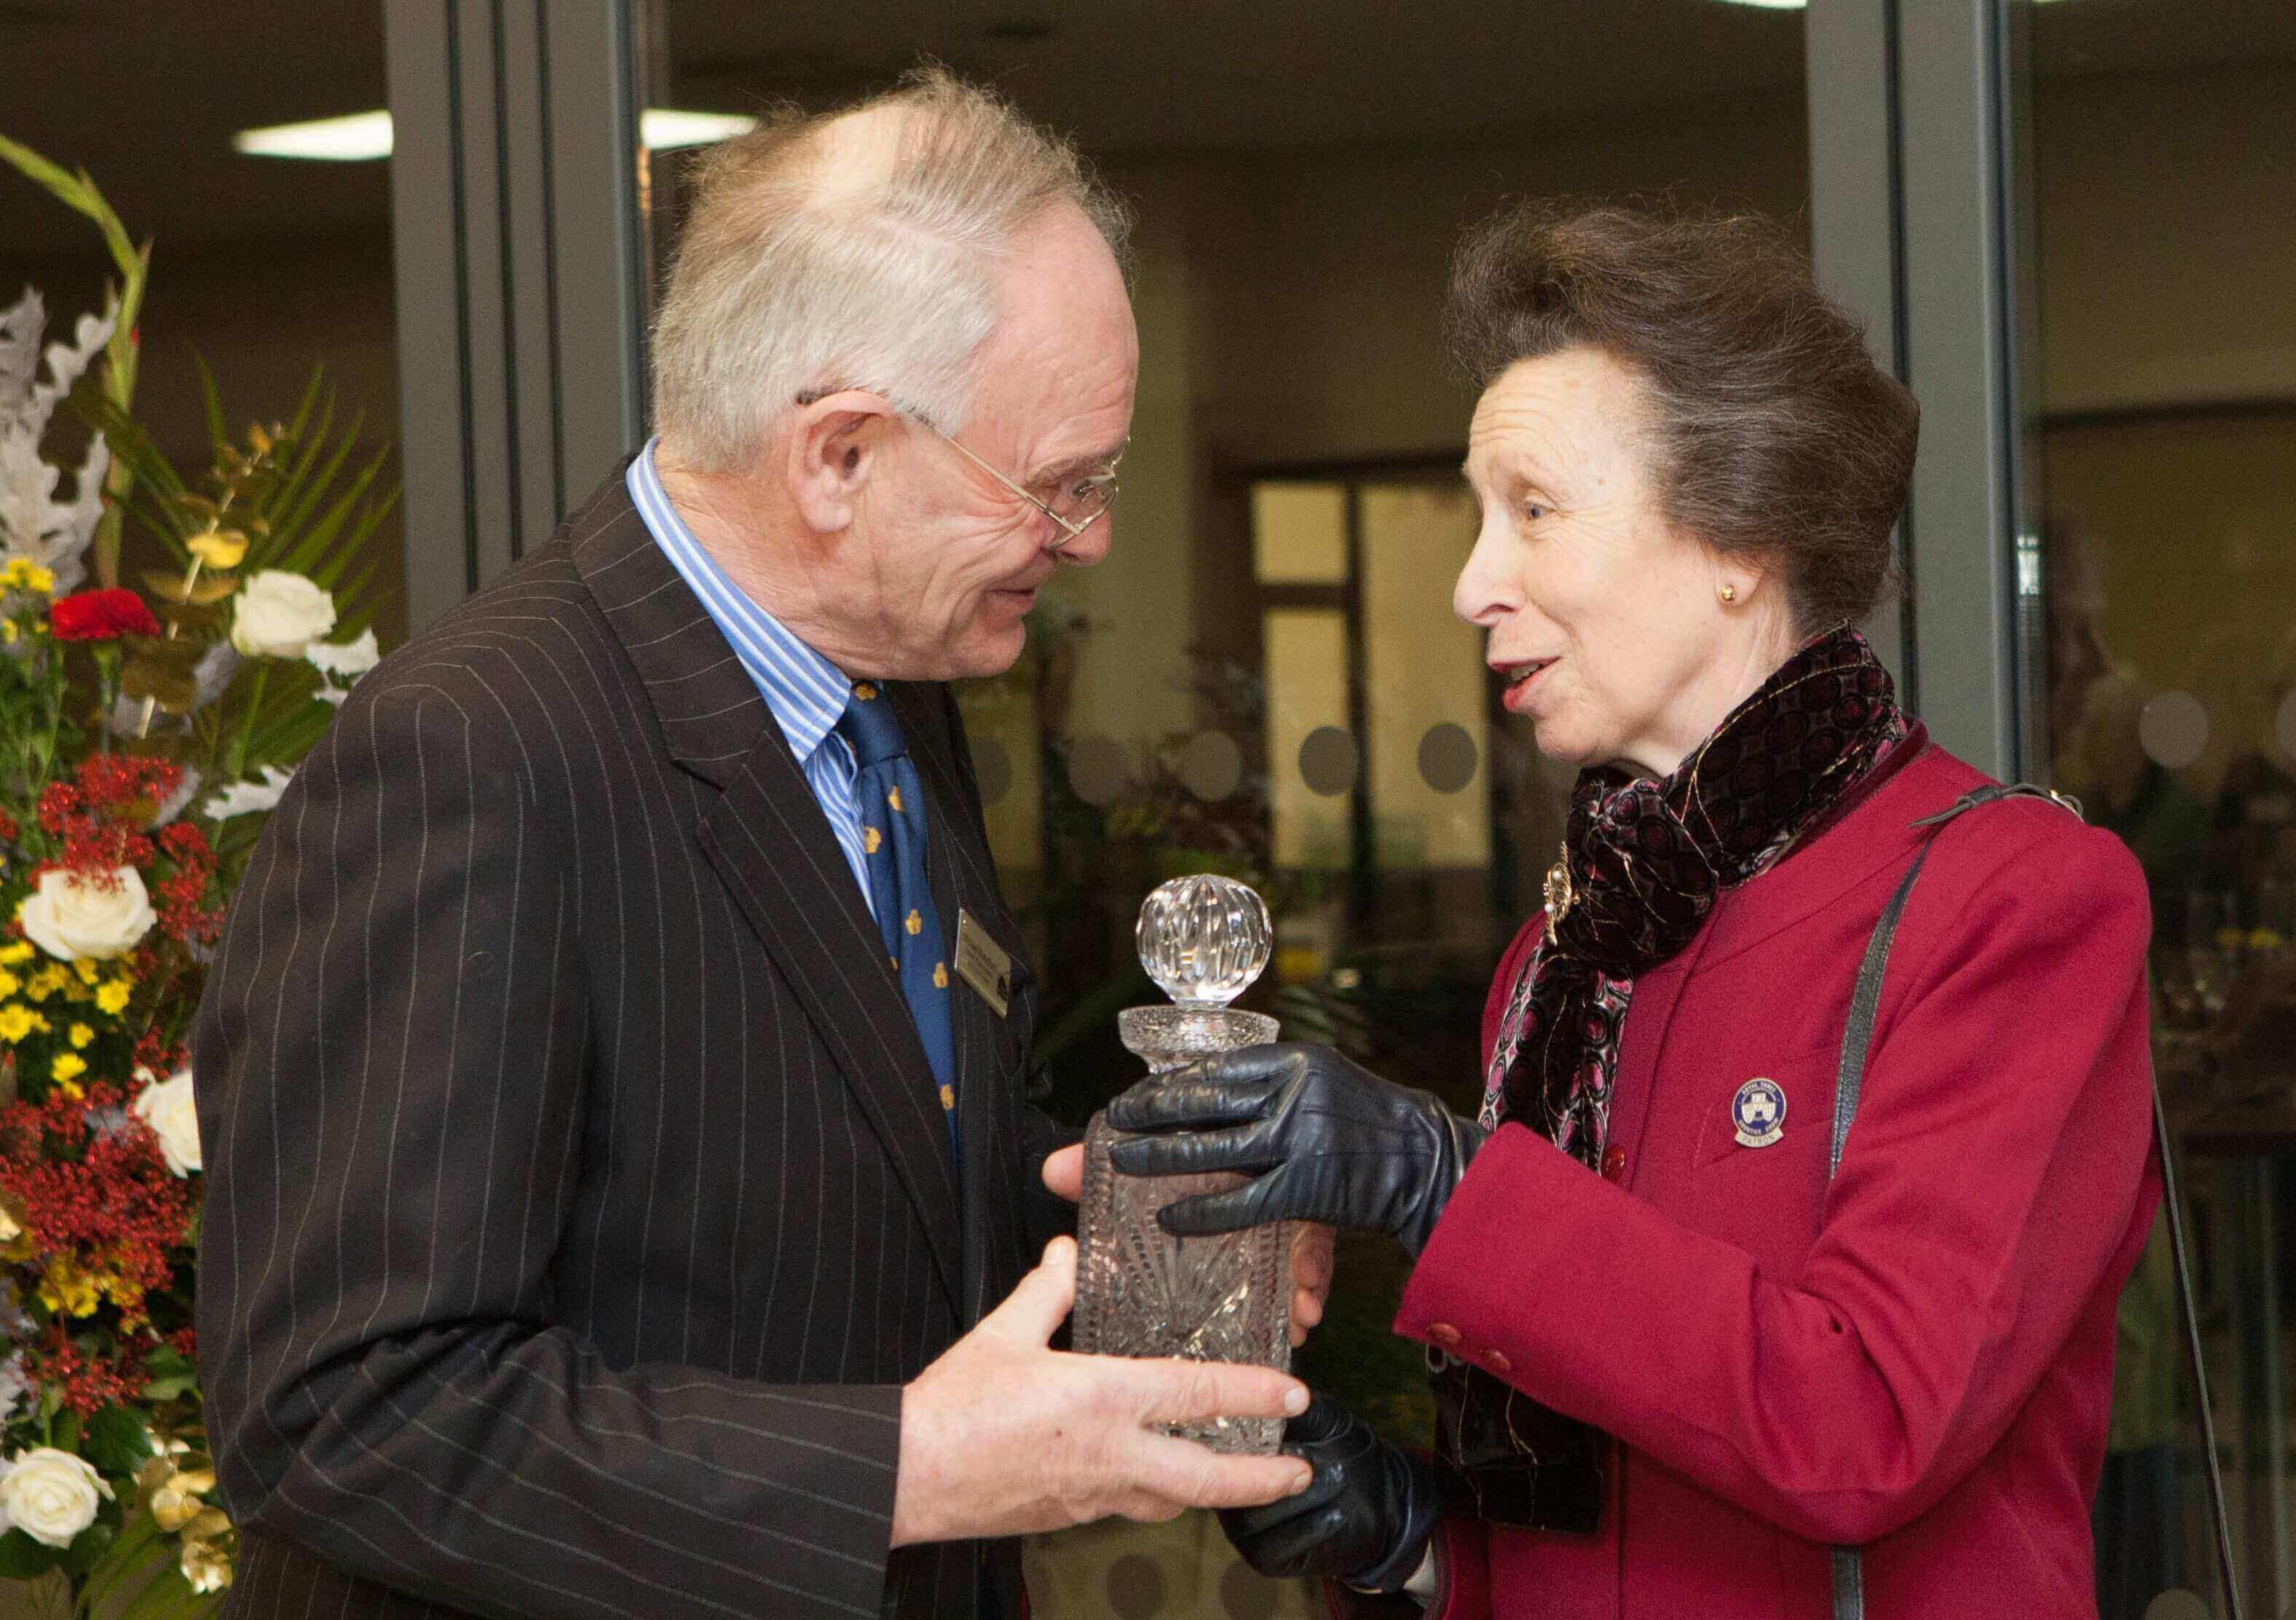 Michael Blandford receiving a crystal decanter from HRH The Princess Royal as a thank you as he retired as Chairman of Council at Three Counties.jpg